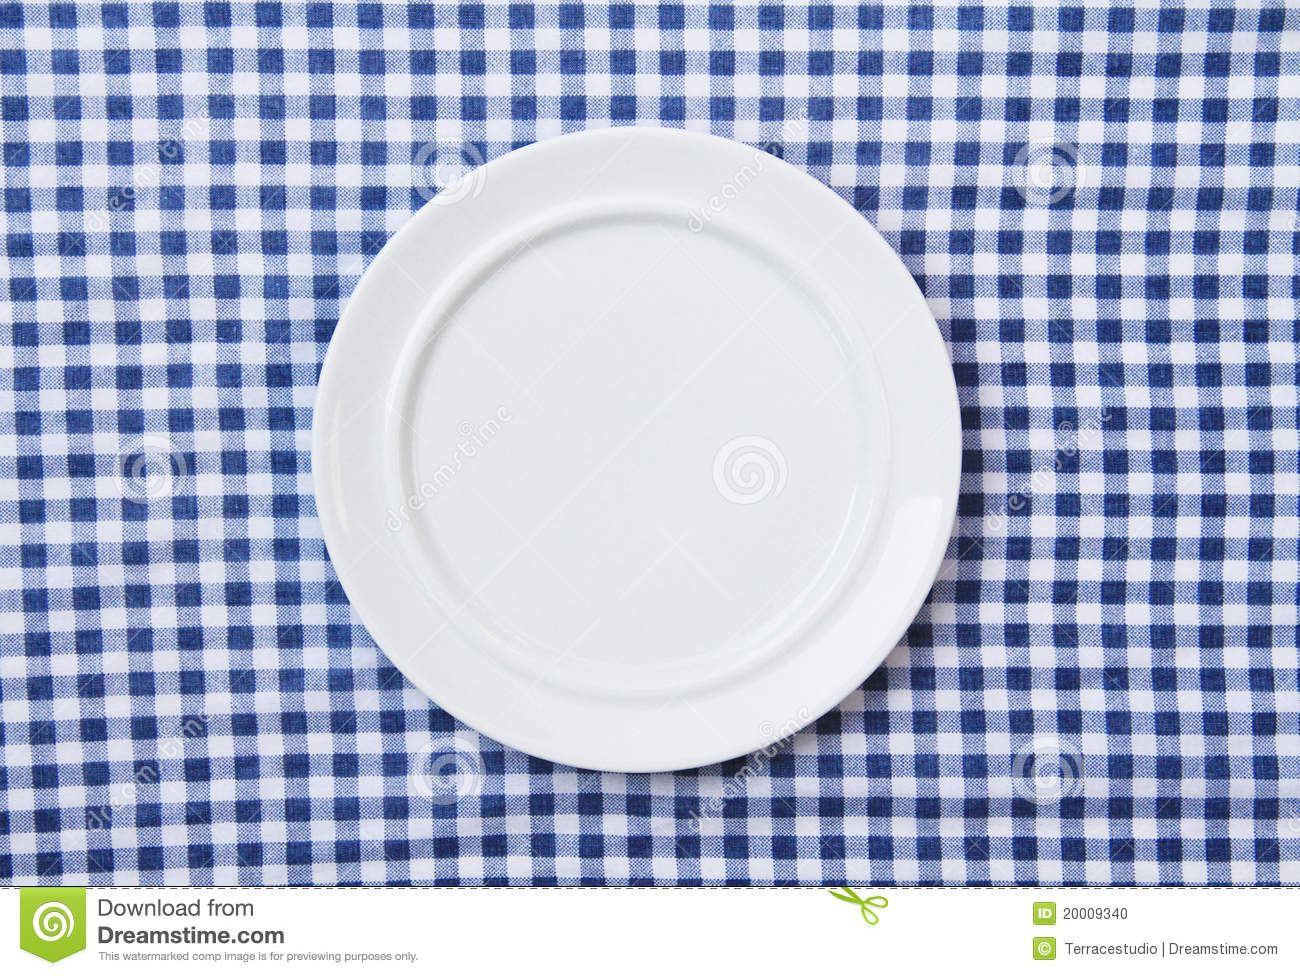 Blue tablecloth background - White Plate On Blue And White Checkered Fabric Stock Photo